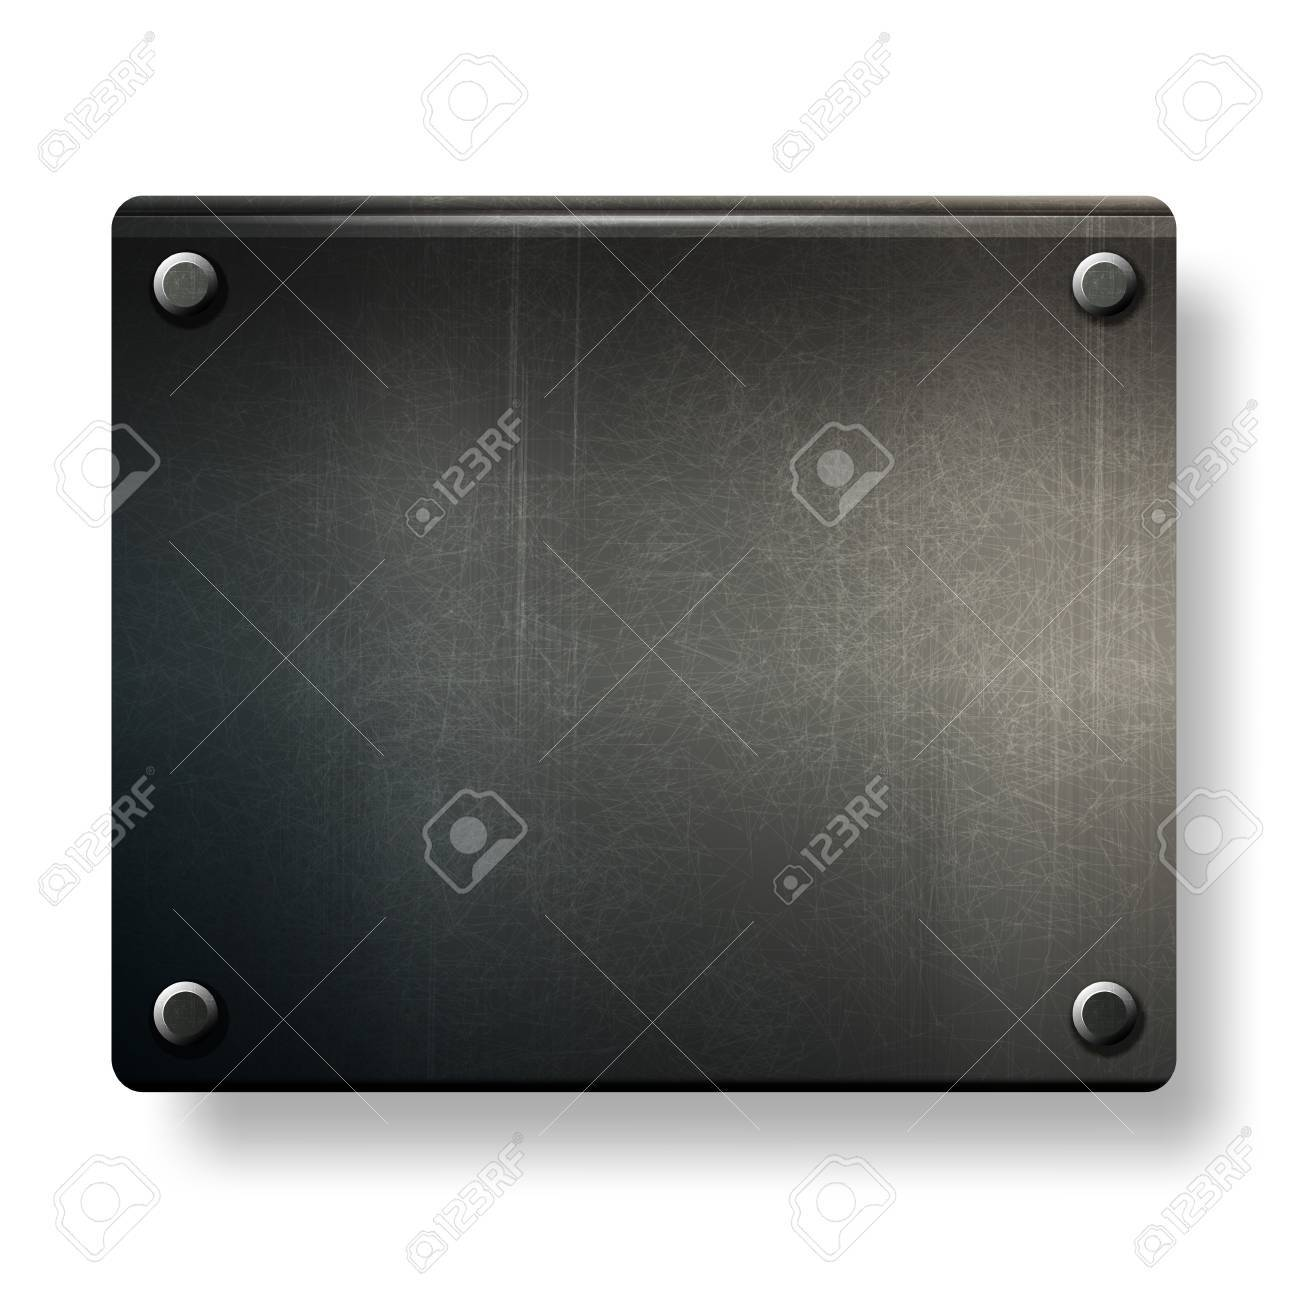 vector grunge background  metal plate with screws eps 10 Stock Vector - 12496587